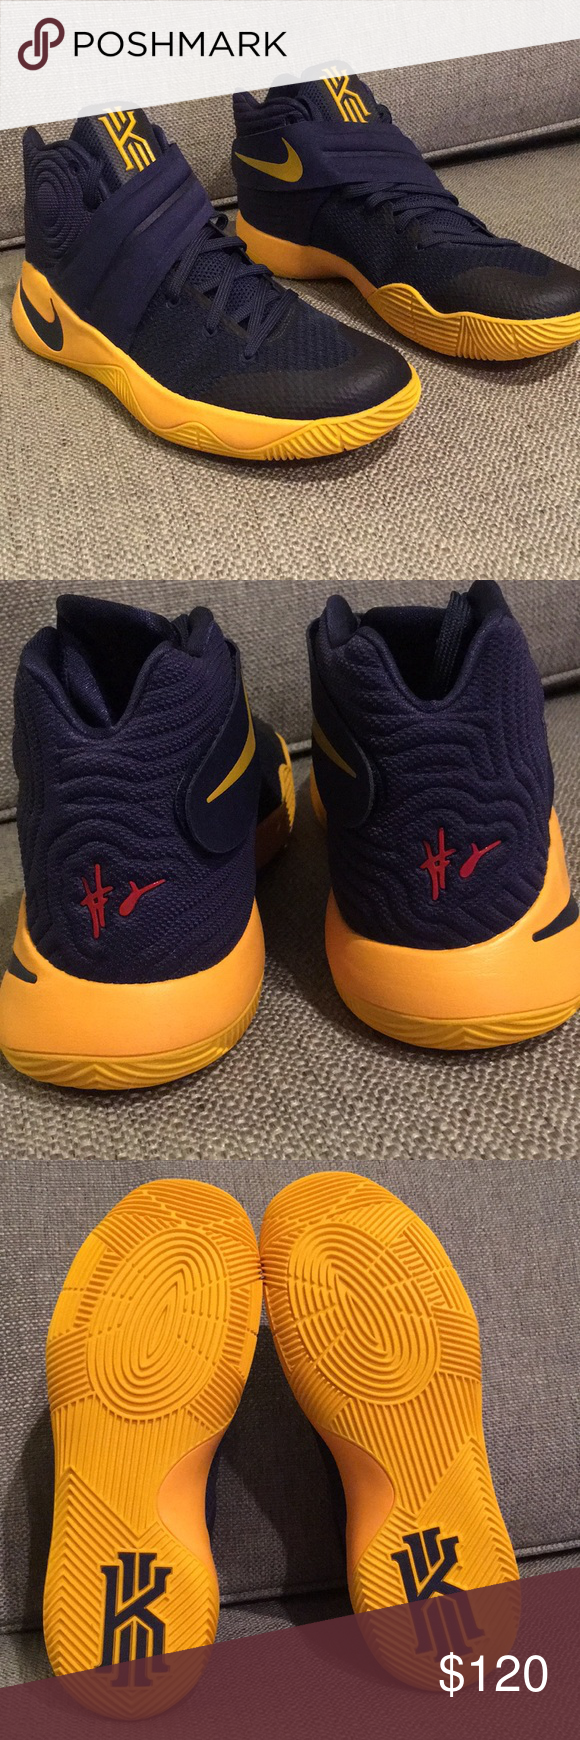 info for a1616 2b06c NWOT Nike Kyrie 2 (Cavs Edition) Brand new. Kyrie Irving 2 ...